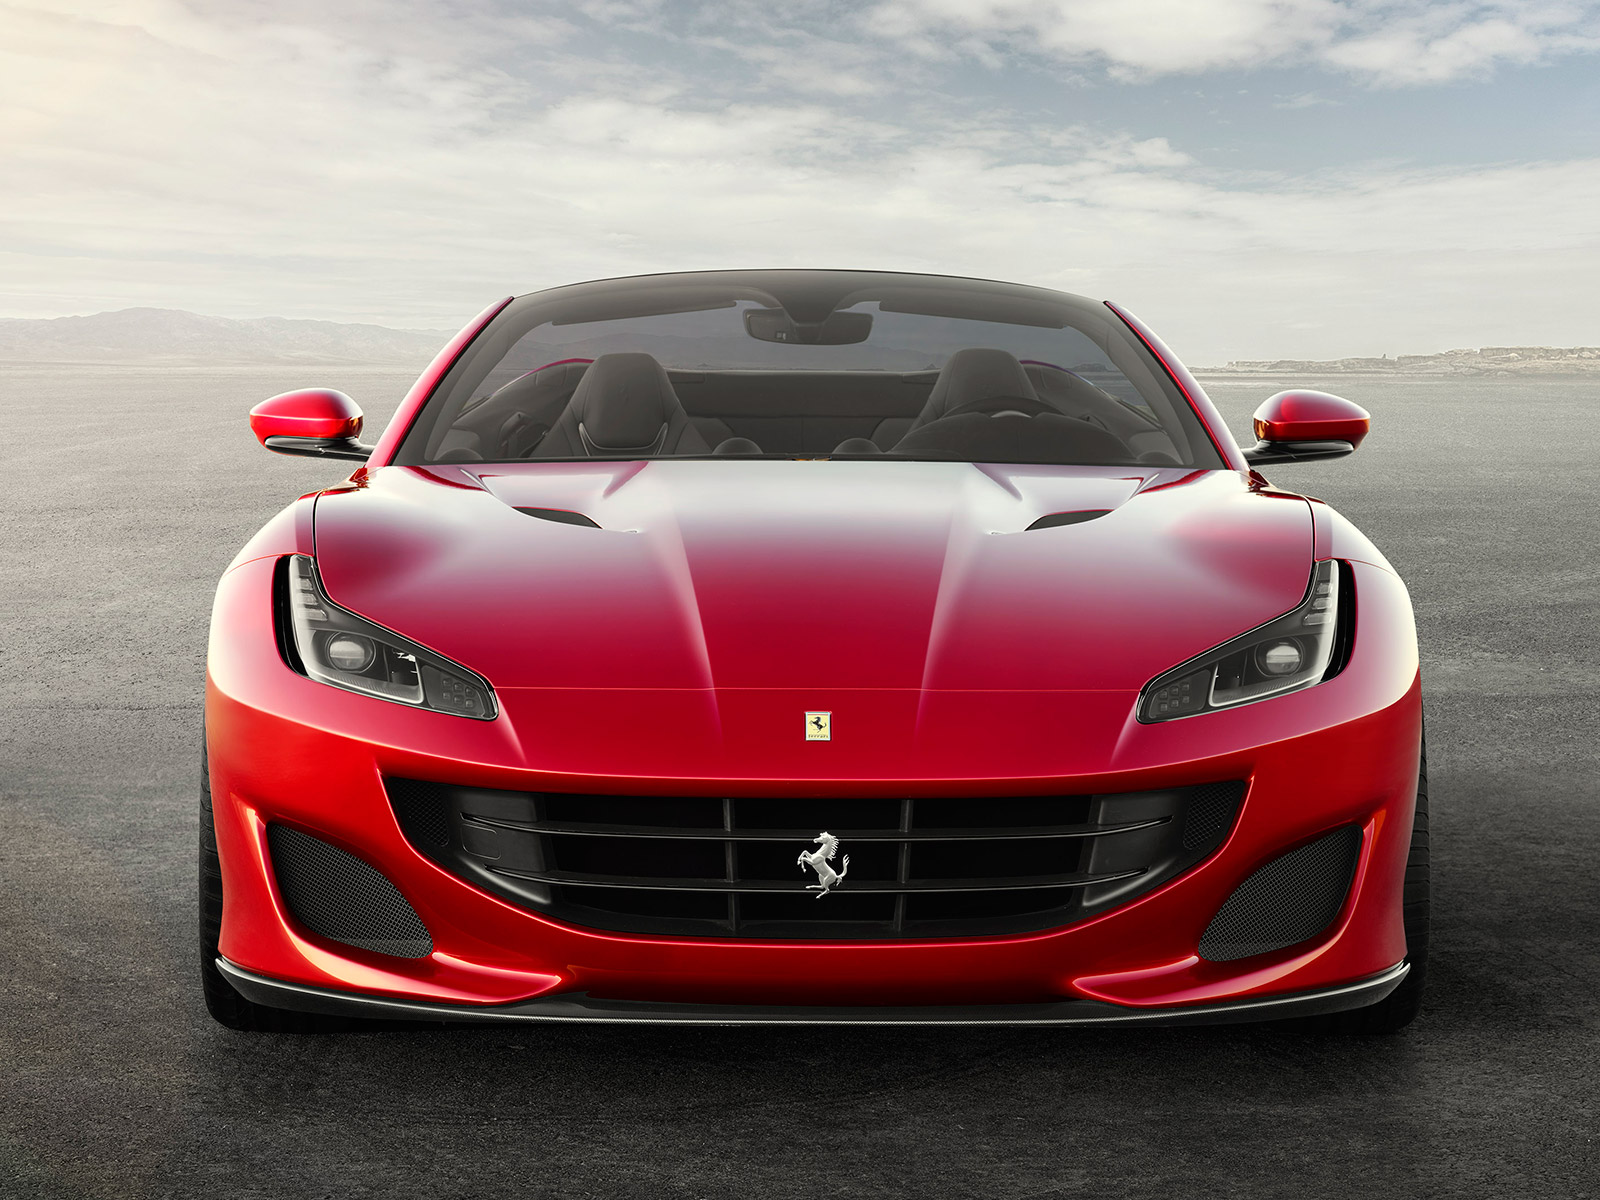 Ferrari Portofino Is the California T\u0027s Unexpected, 592,HP